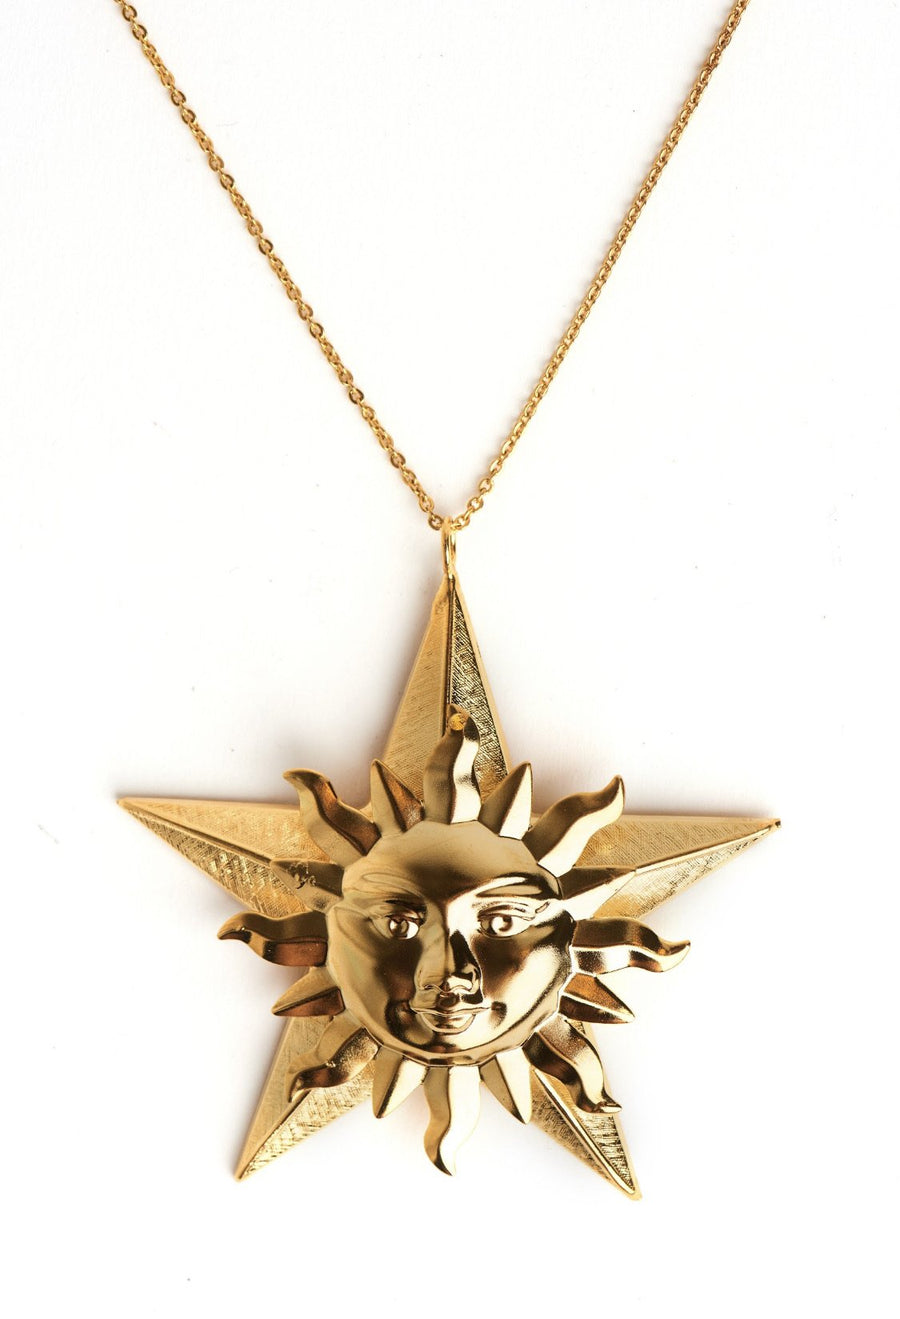 Star sun necklace Neckpieces Mordekai